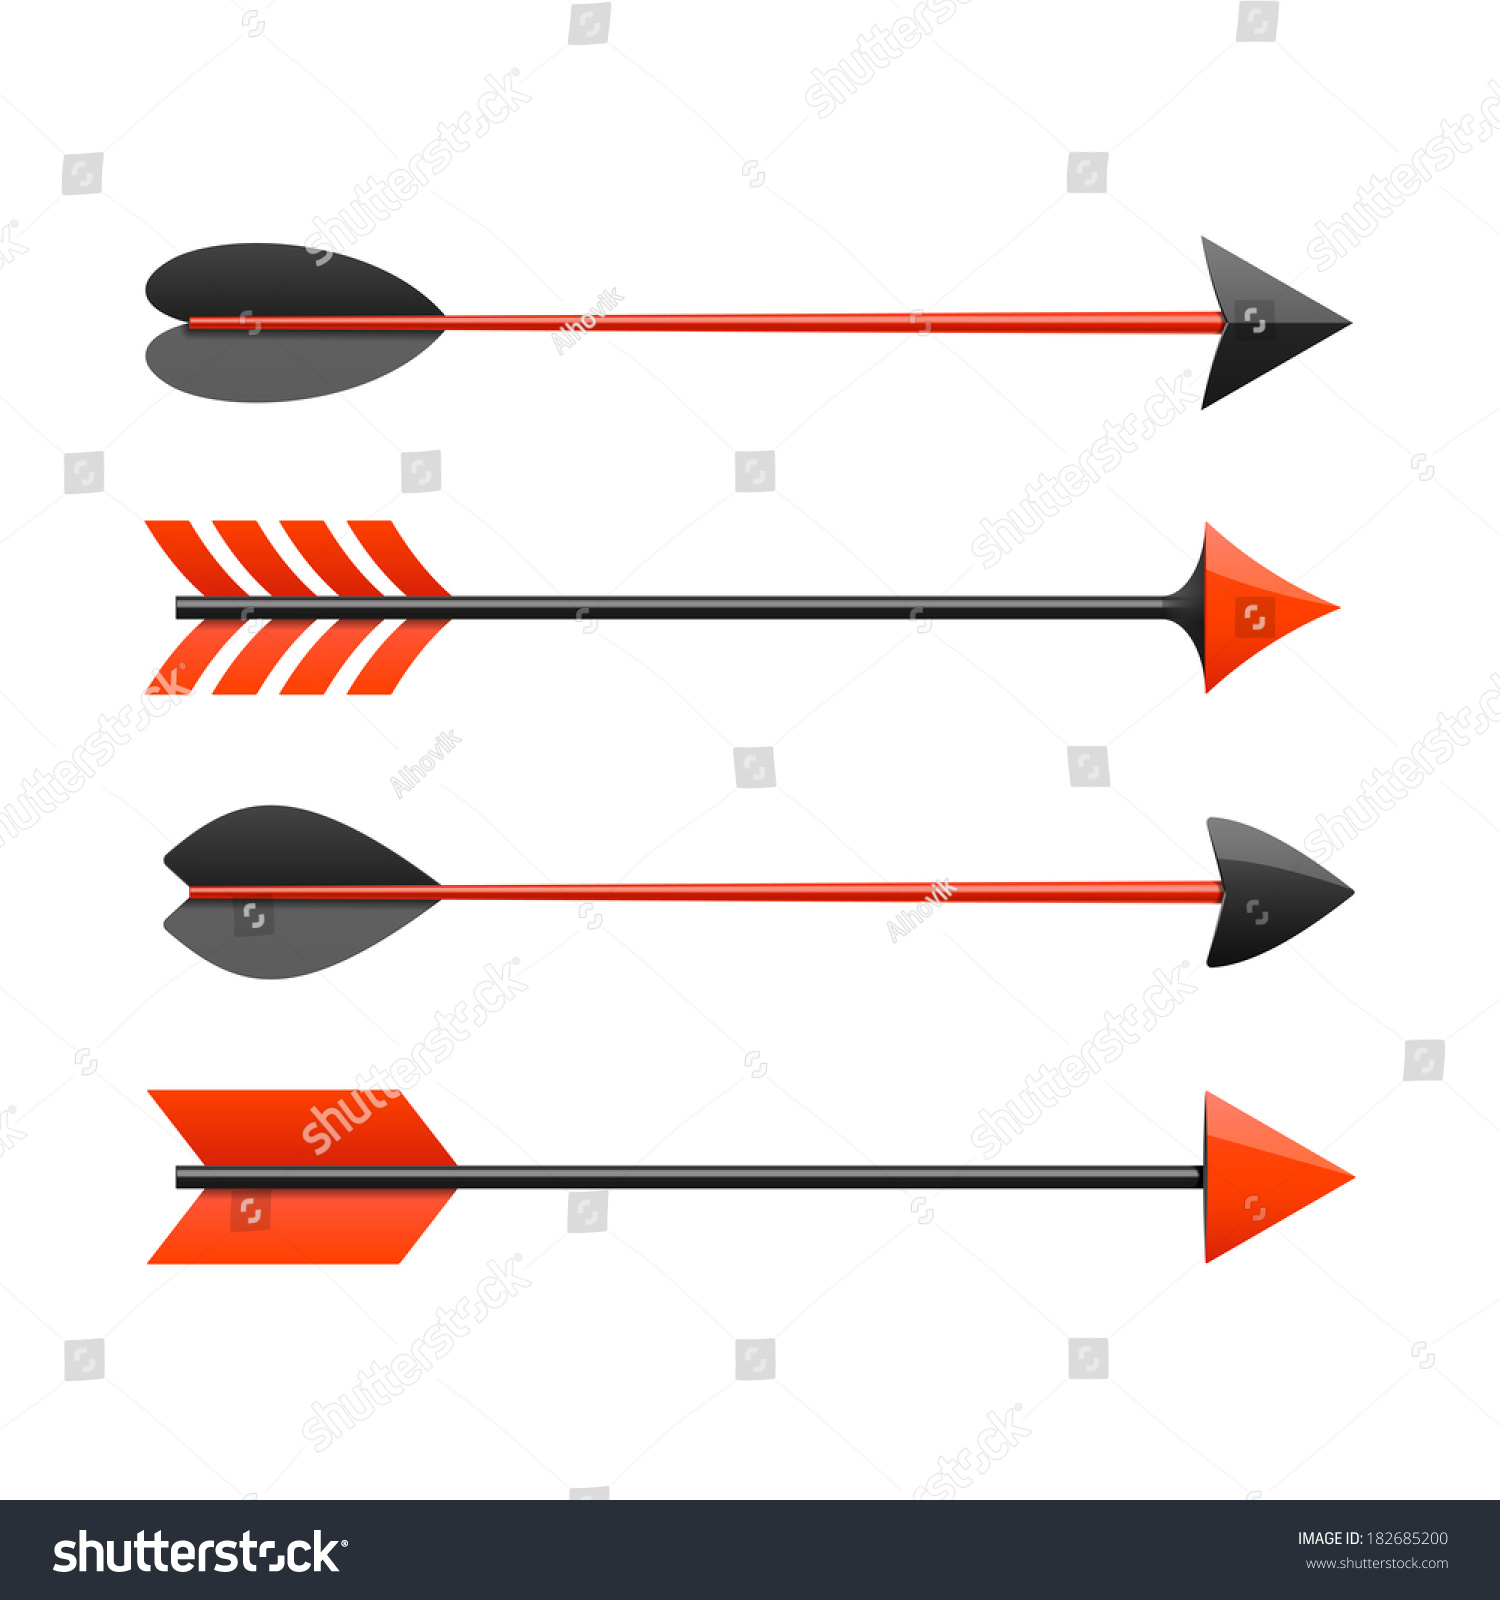 Bow Arrows. Vector. - 182685200 : Shutterstock